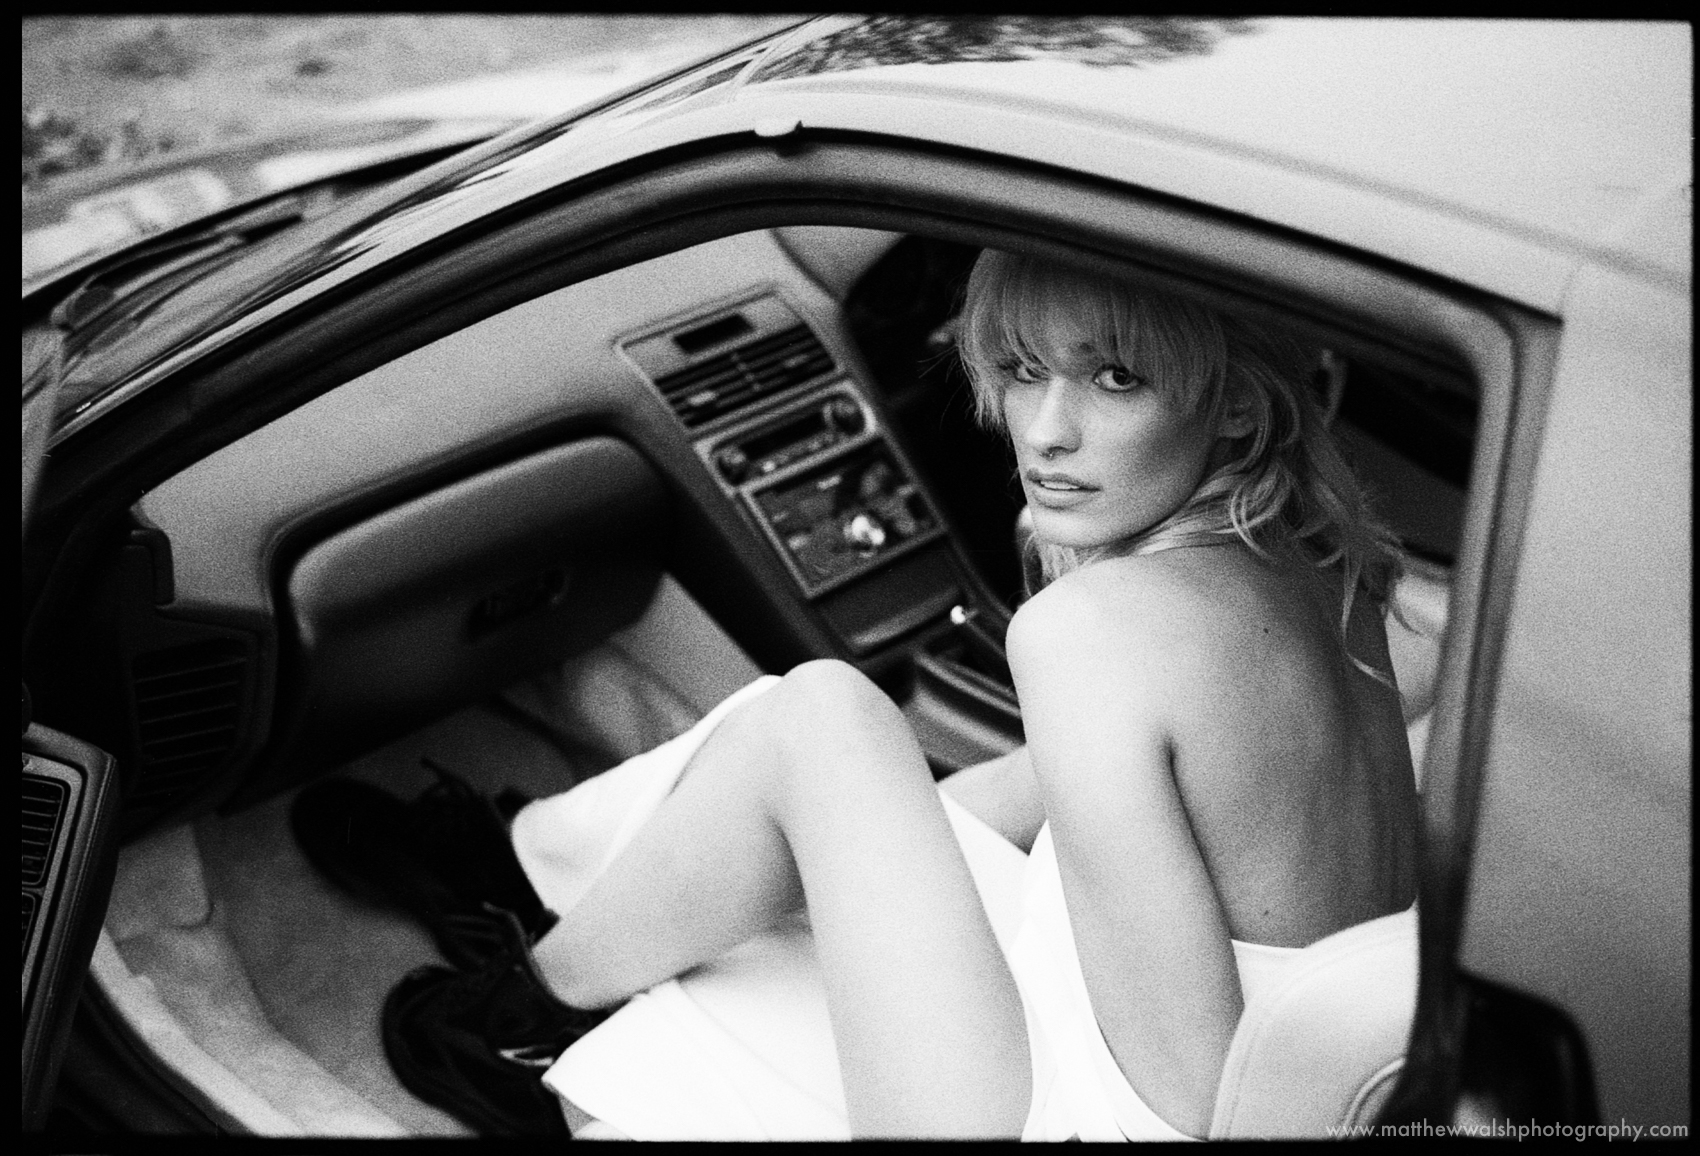 Looking sexy in a car in b&w shot on the Leica